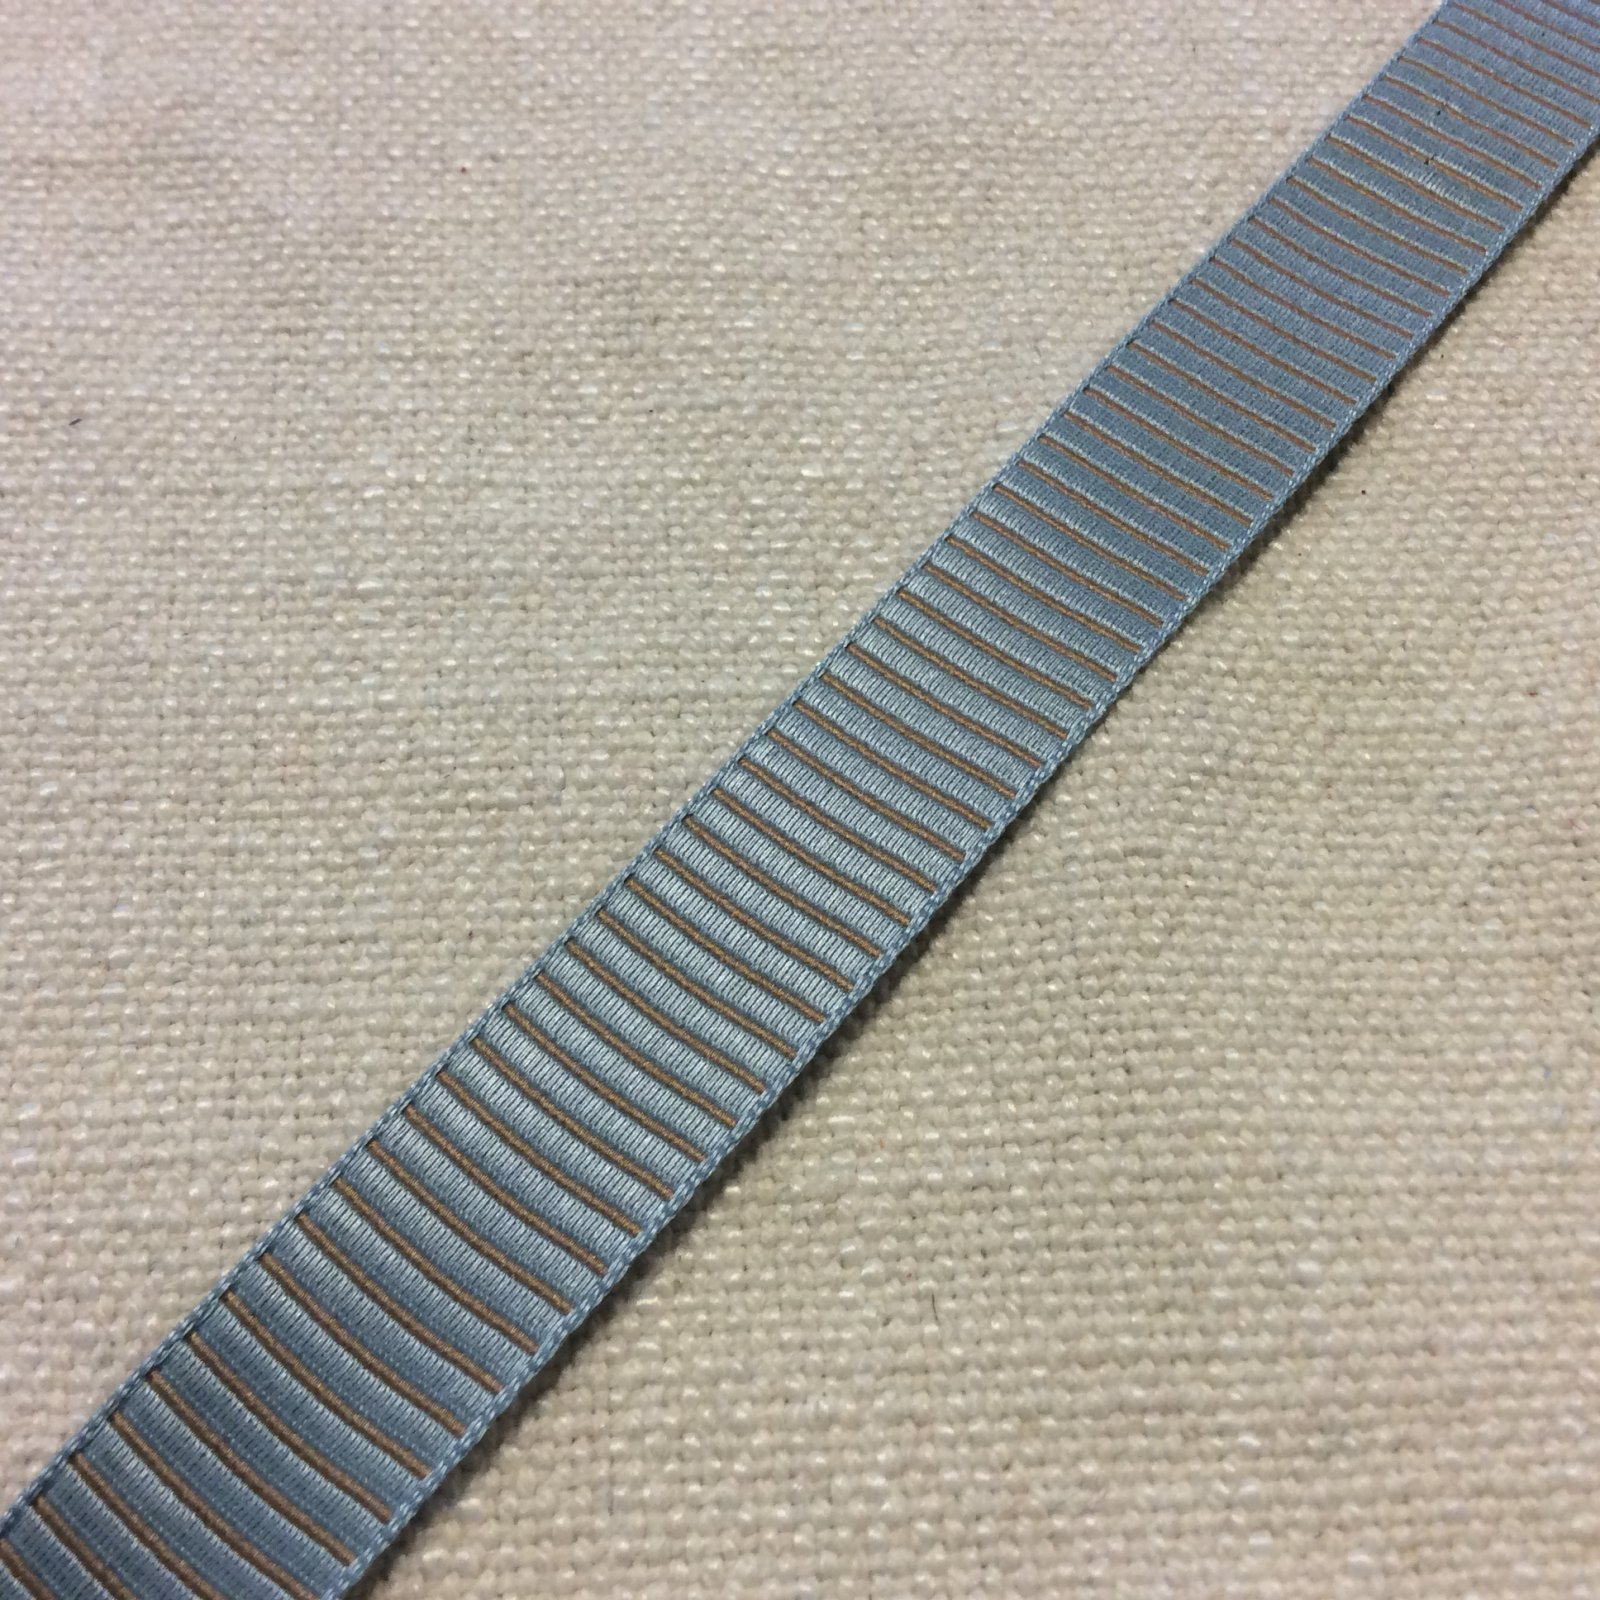 Satin Ribbon 5/8 Made in France Taupe and Ice Blue Ribbed Woven Trim Ribbon RIB1269